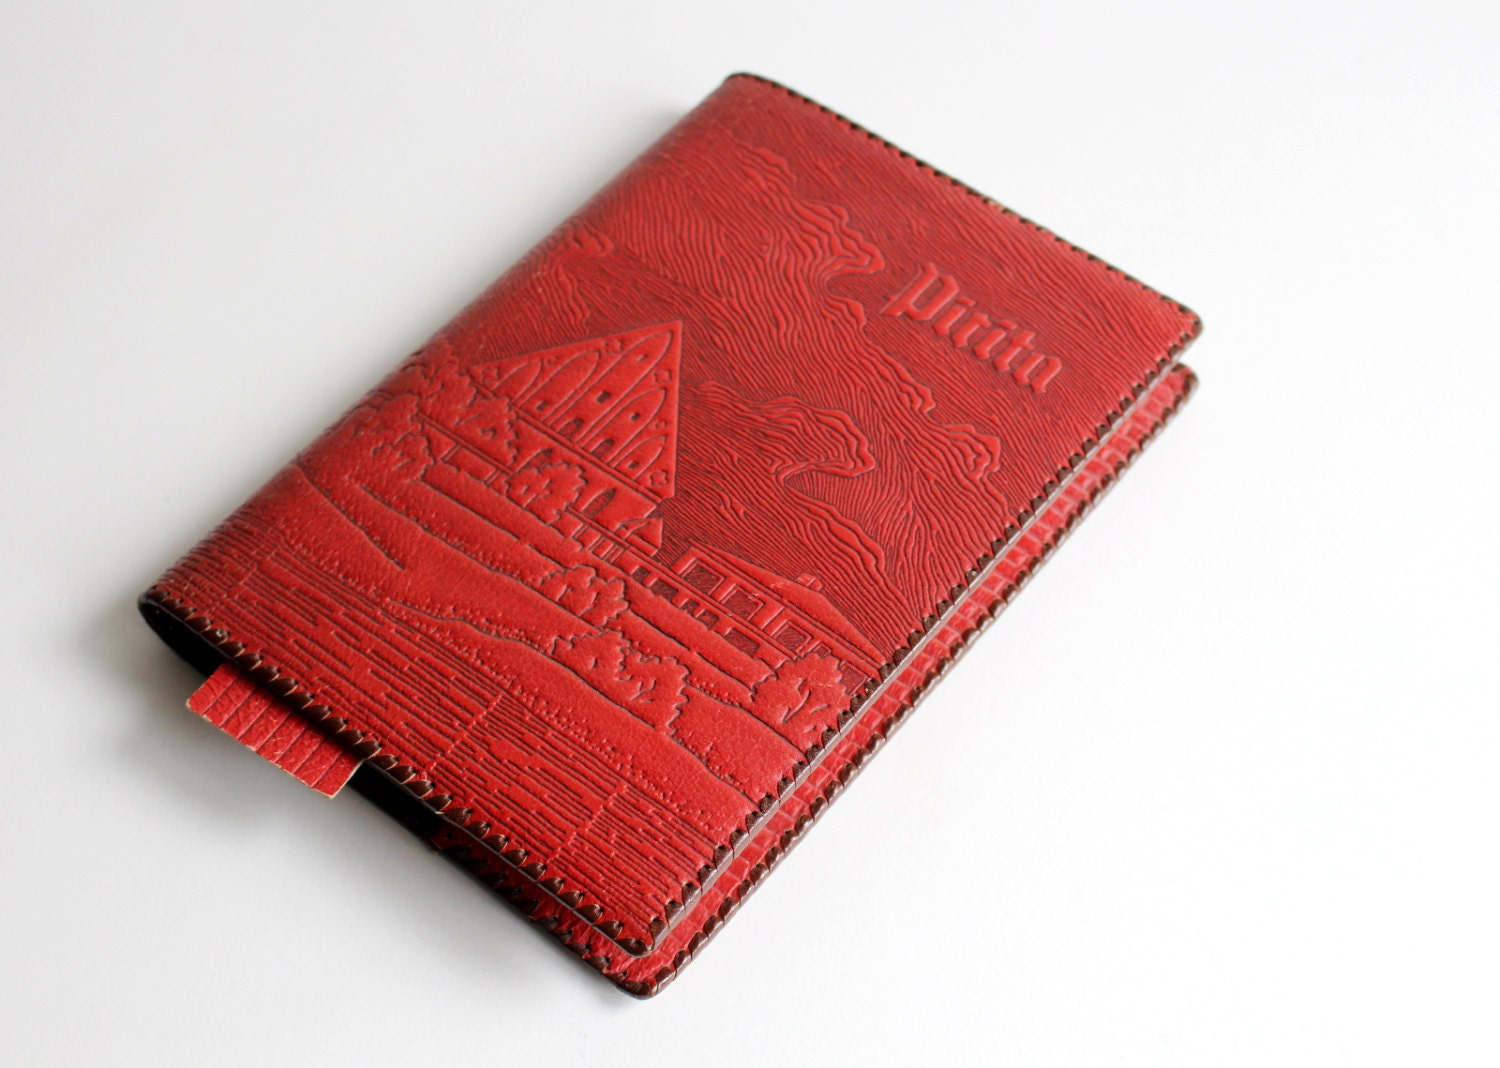 Embossing Fabric Book Cover : Vintage red leather book covers embossed soviet notebook or